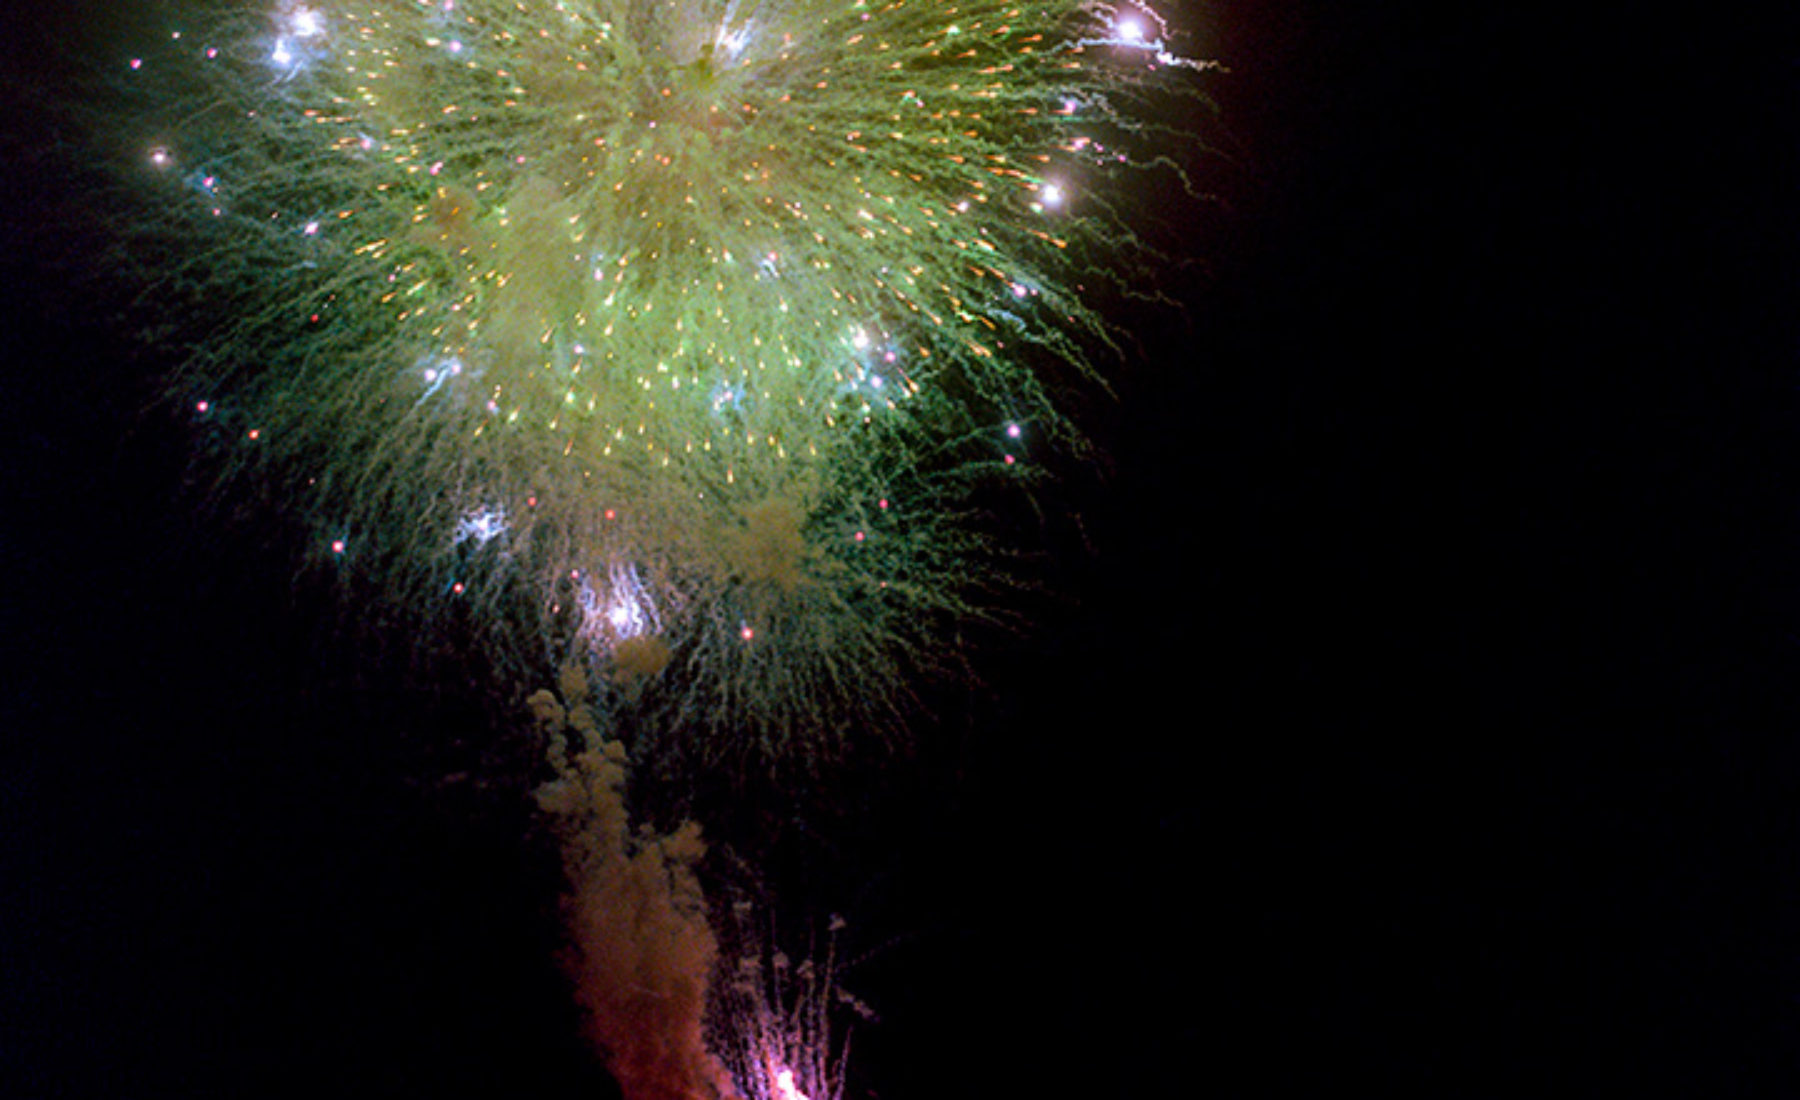 Fireworks very closely